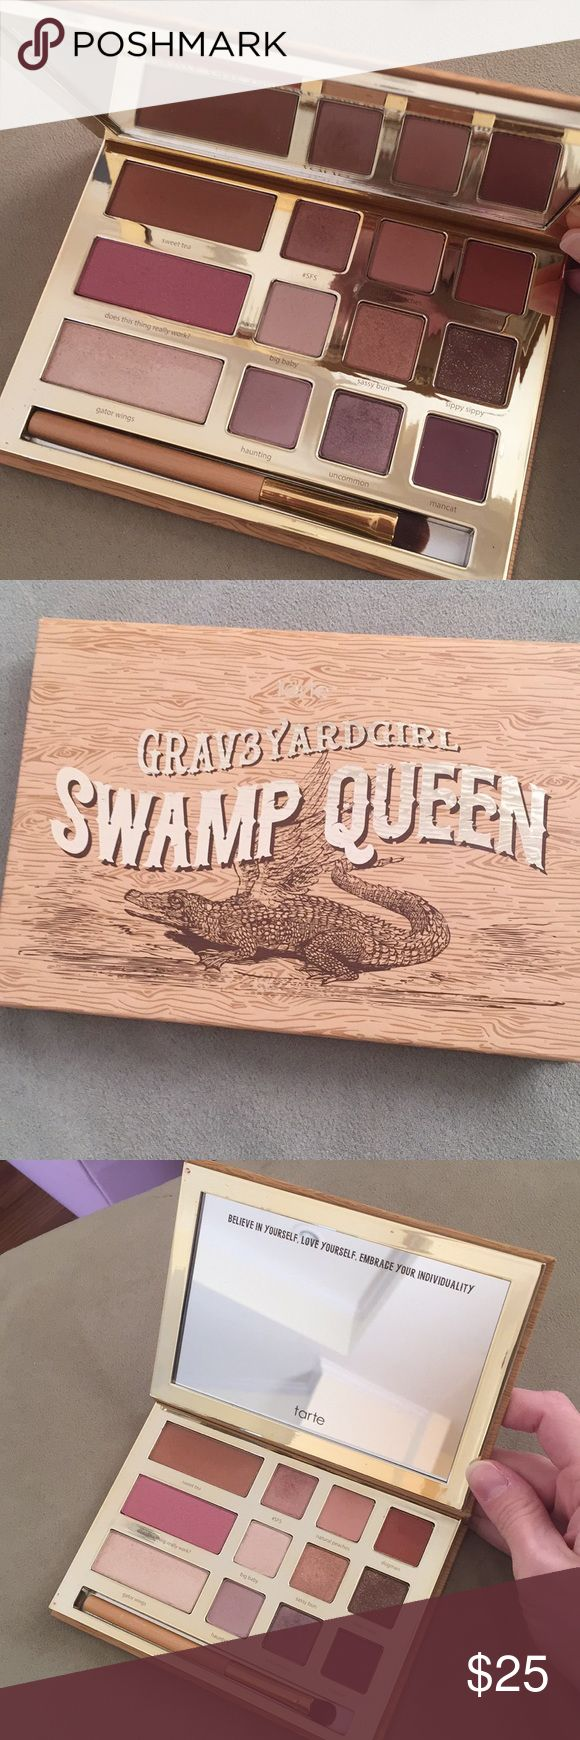 Tarte Graveyard Girl swamp queen palette EUC Used about 2-3 times but I've acquired so much makeup in the last year that this just never gets attention anymore.  Great colors for lots of different looks! tarte Makeup Eyeshadow